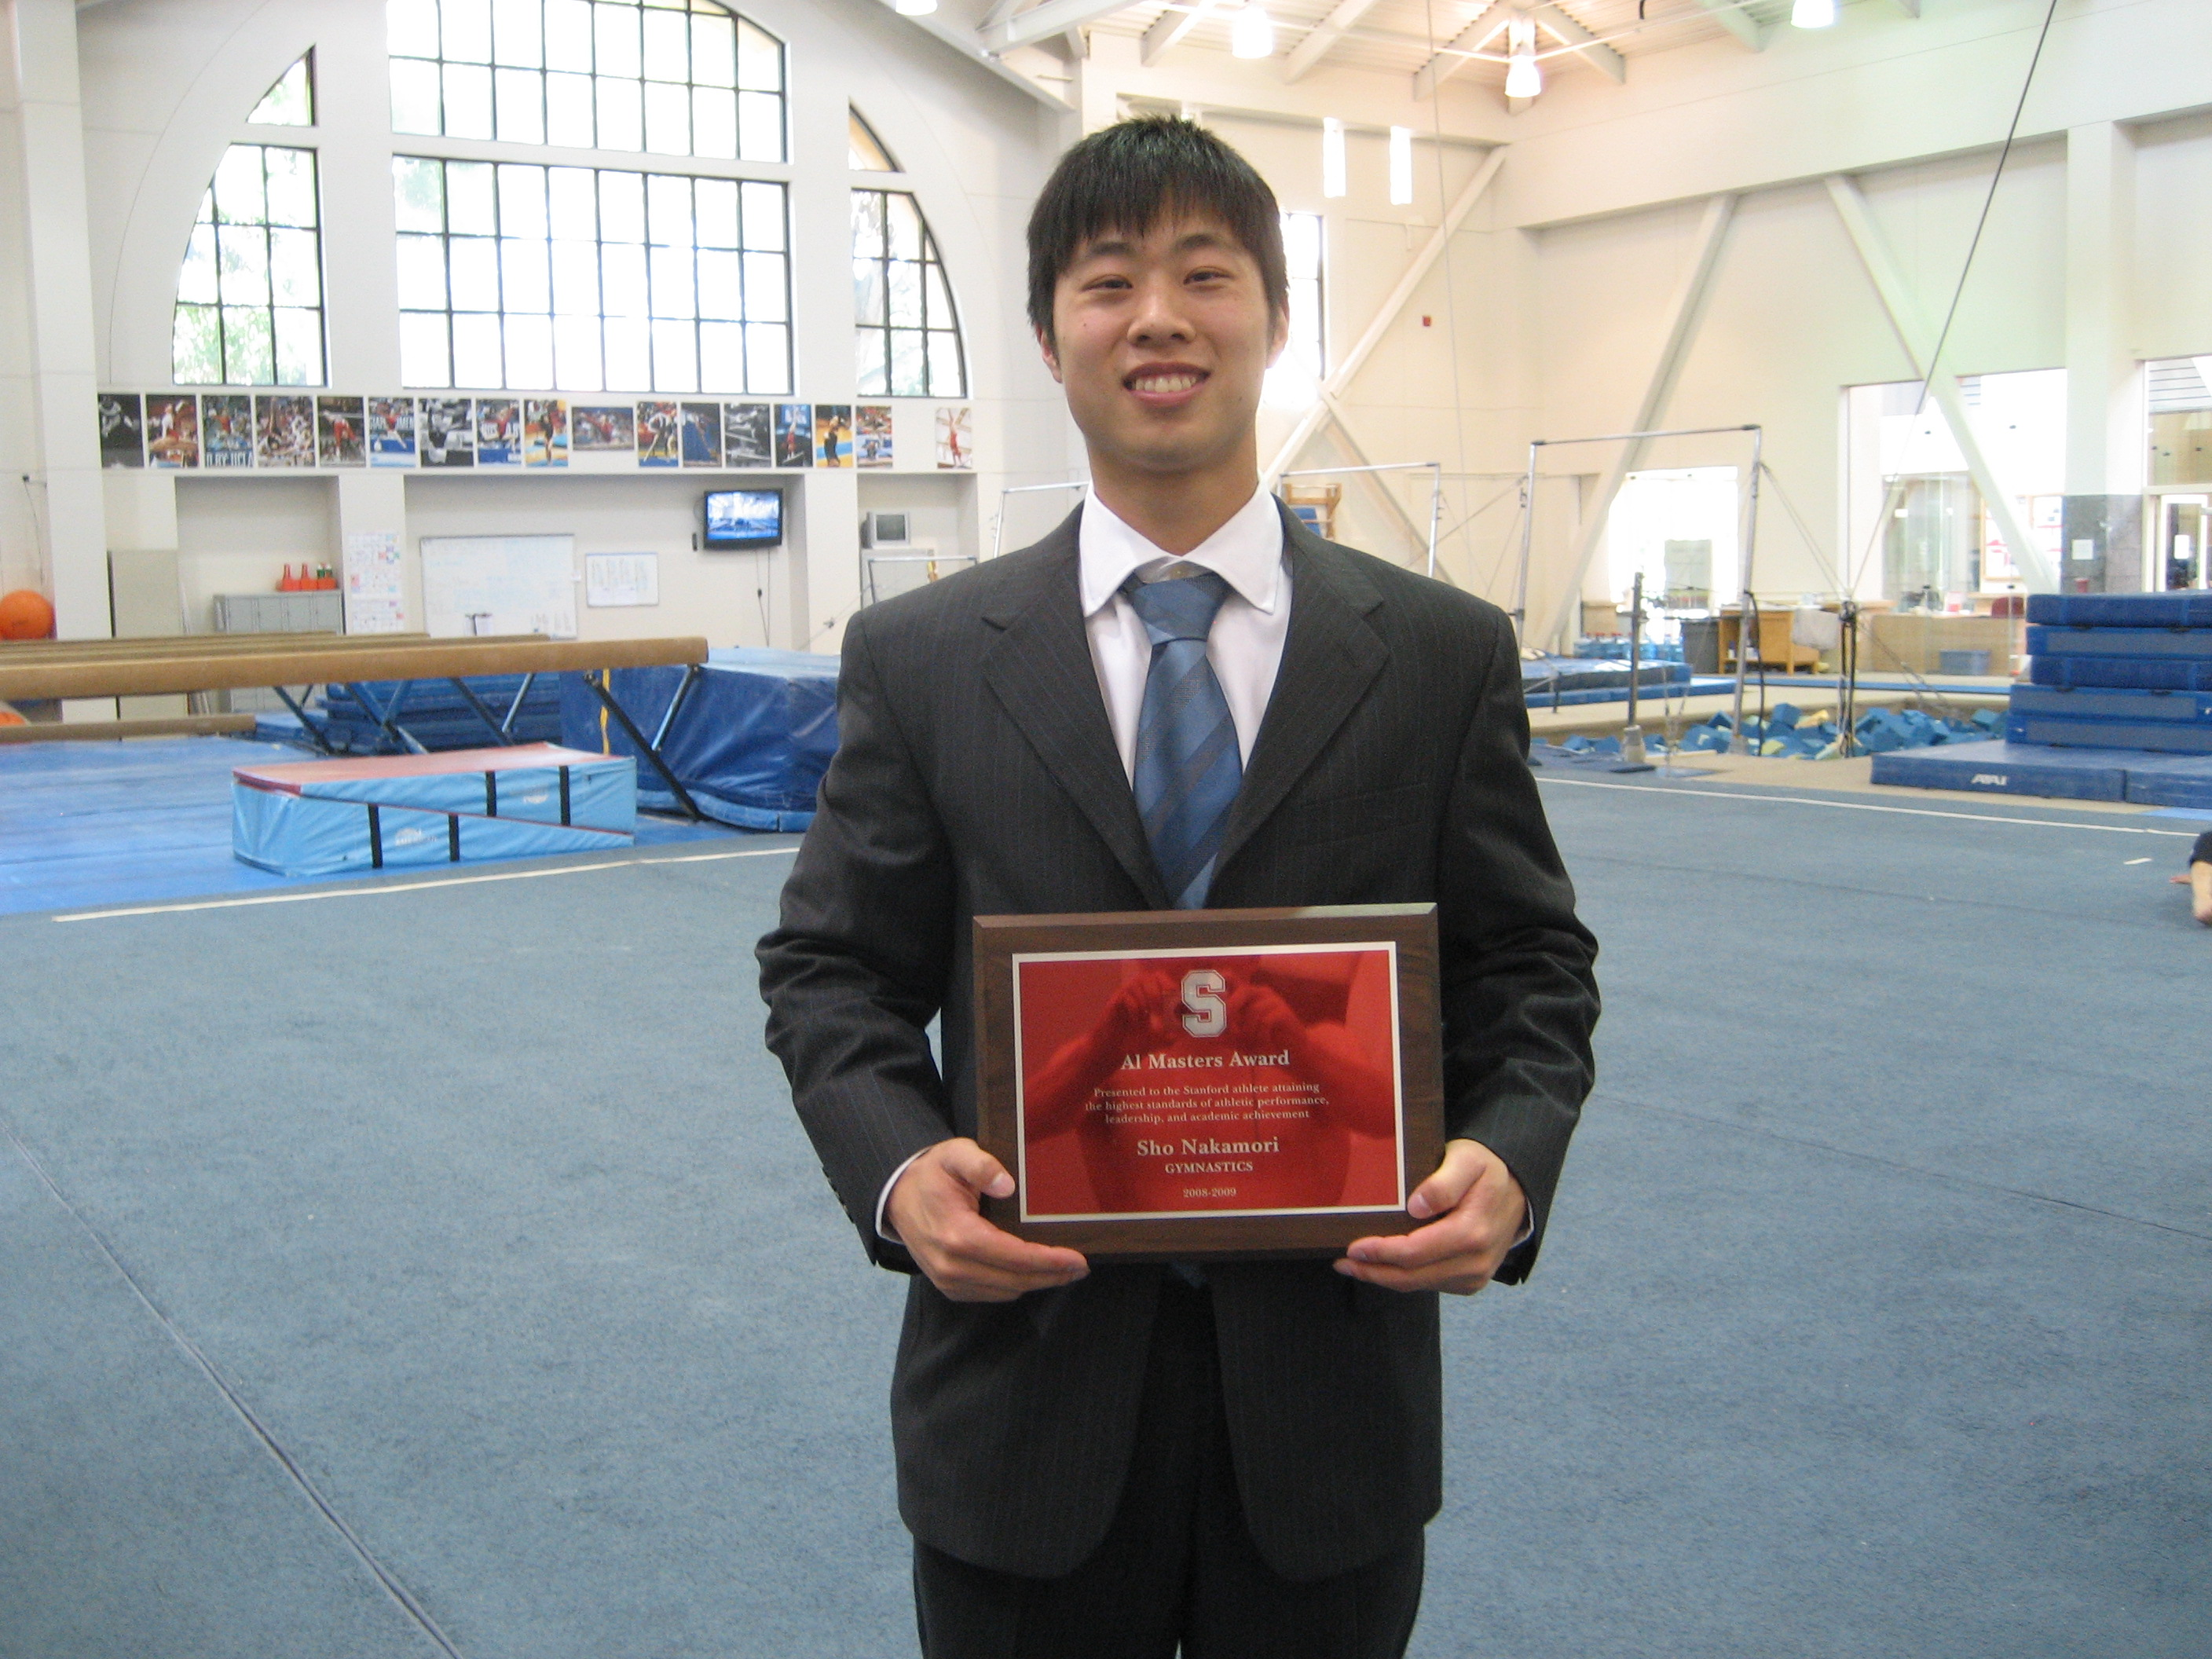 me with the award